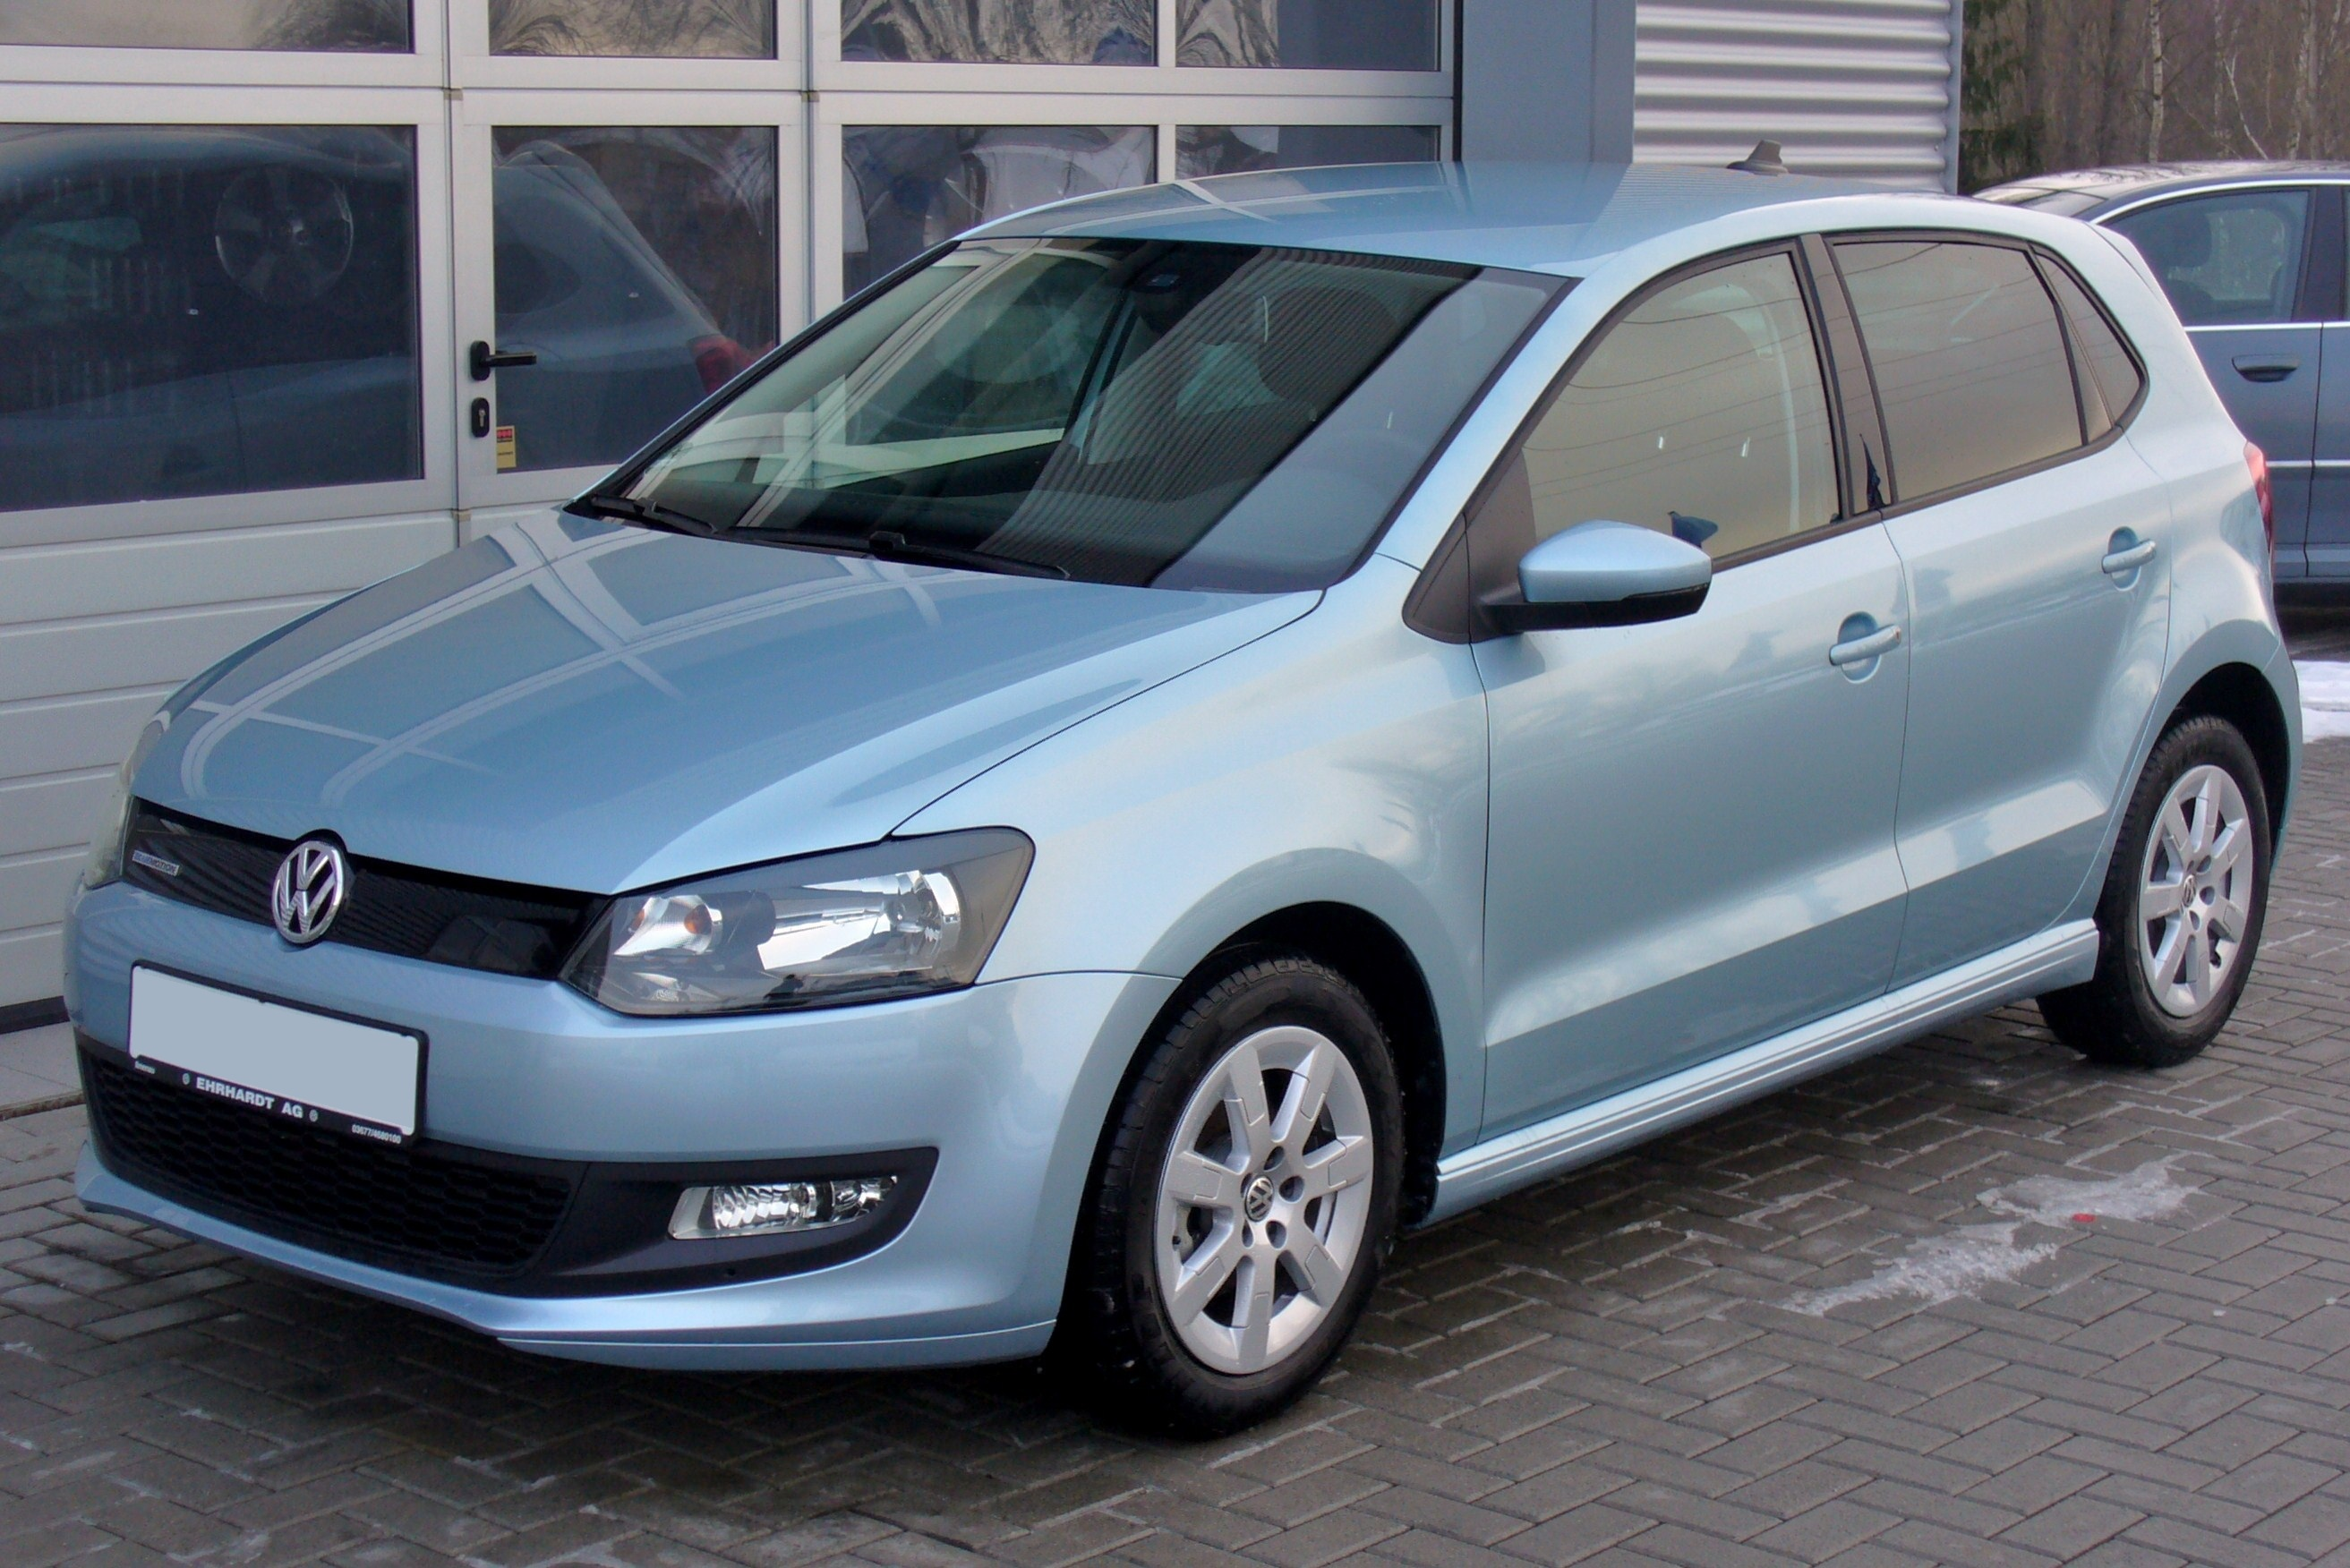 file vw polo v 1 2 tdi bluemotion glacierblau jpg. Black Bedroom Furniture Sets. Home Design Ideas